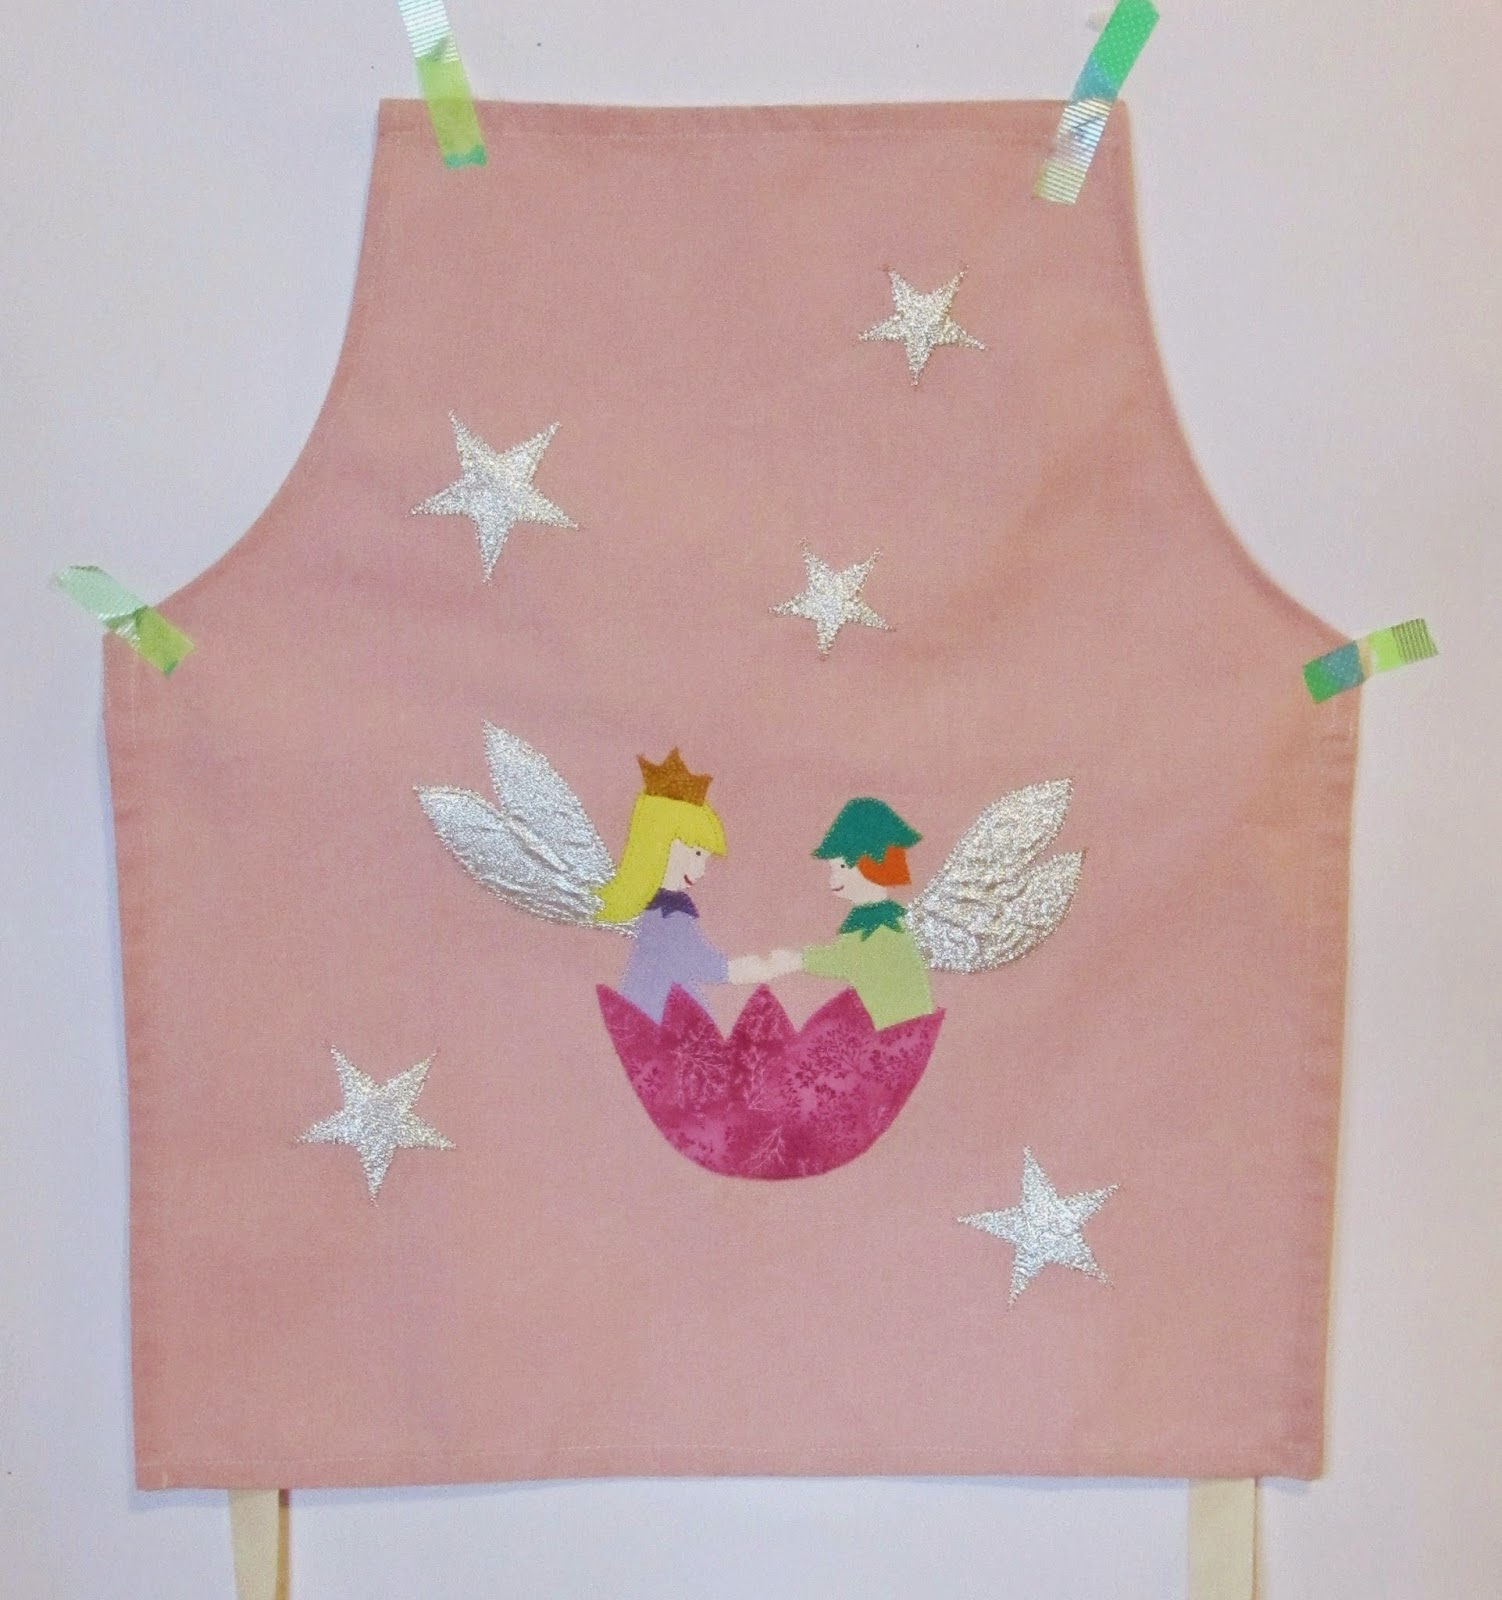 applique fatina ed elfo